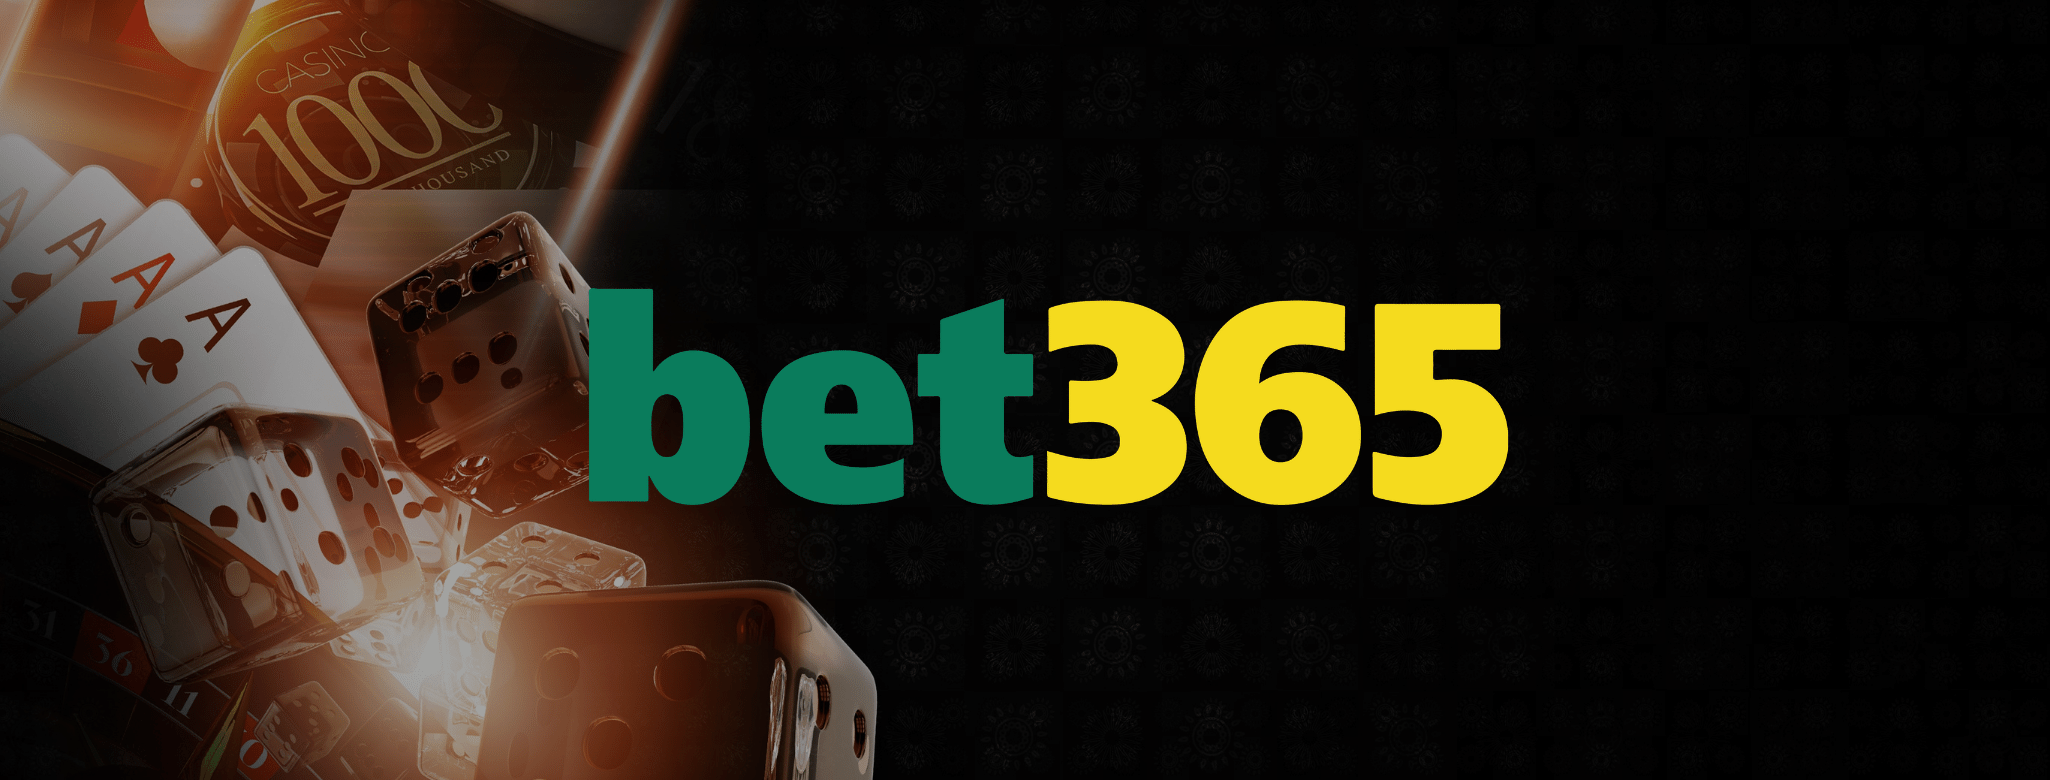 Countdown to Christmas in Style with Bet365